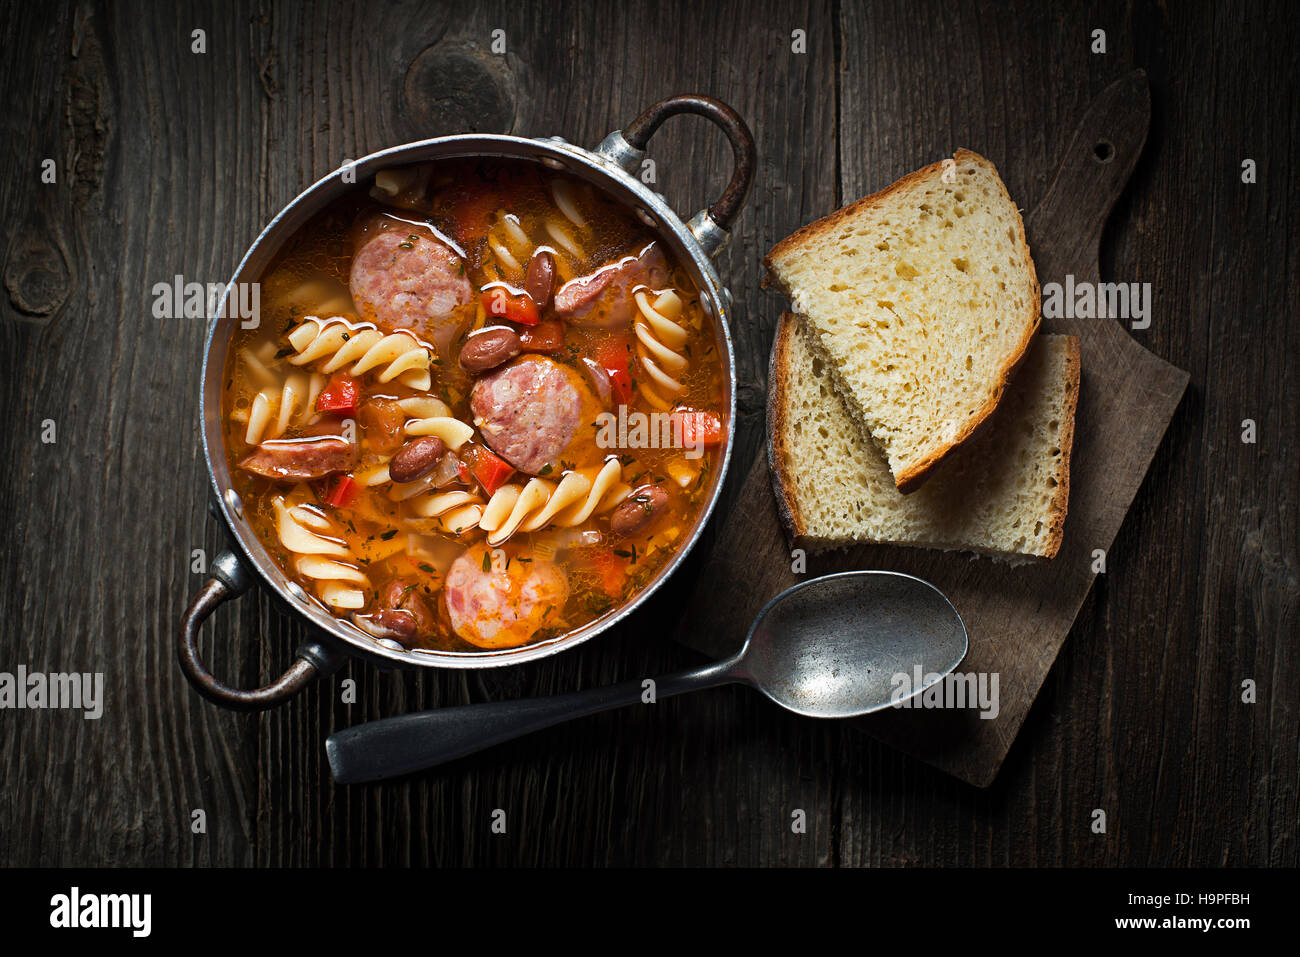 Fresh bean stew with sausage and pasta on wooden background - Stock Image